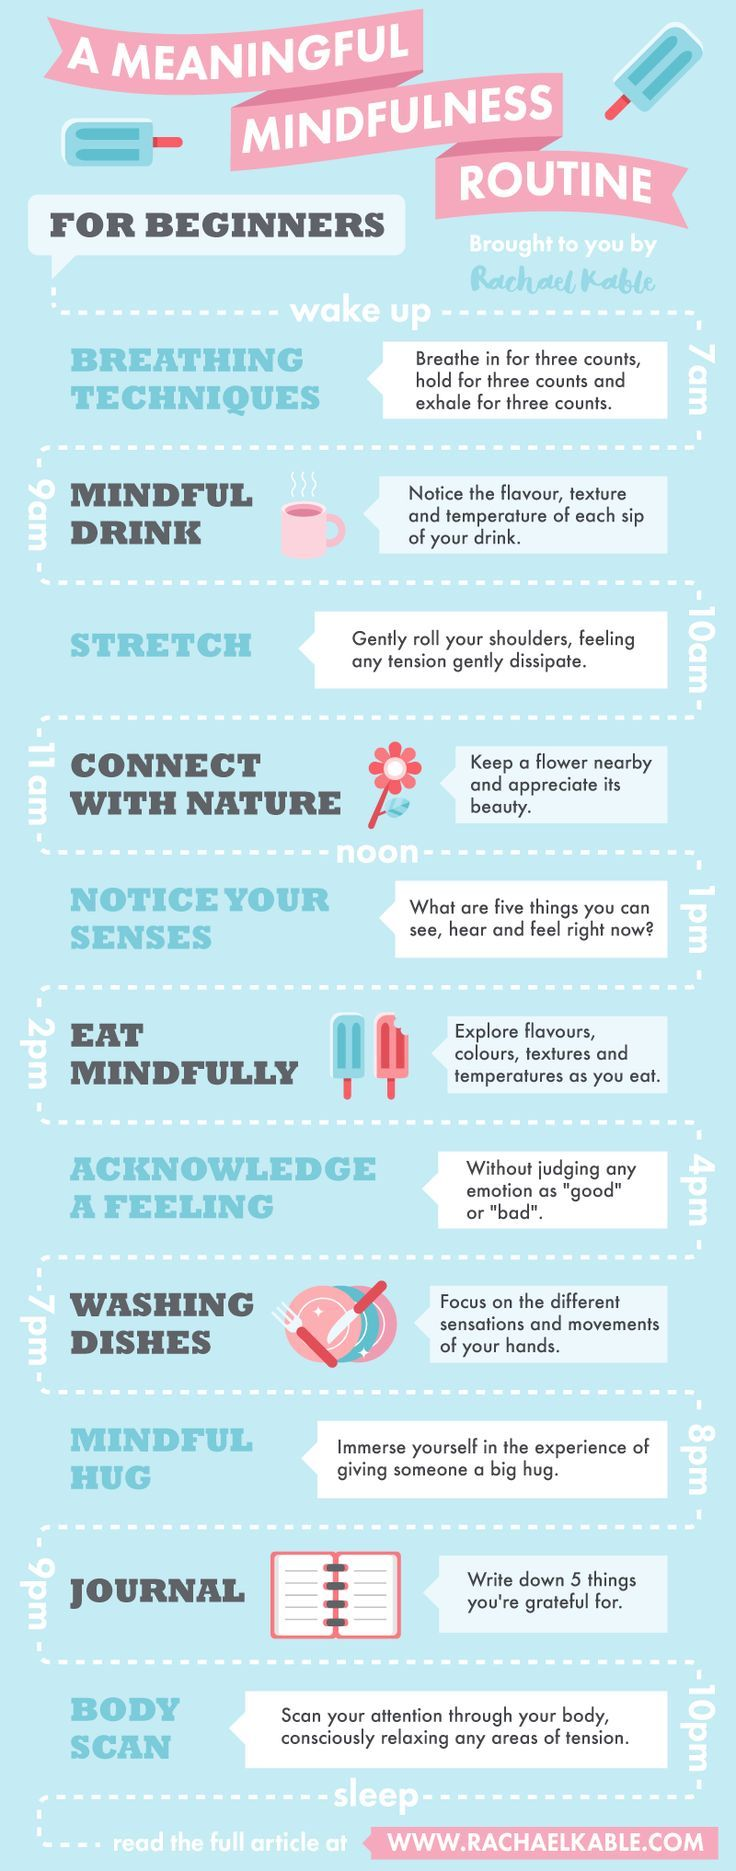 A Meaningful Mindfulness Routine for Beginners — R